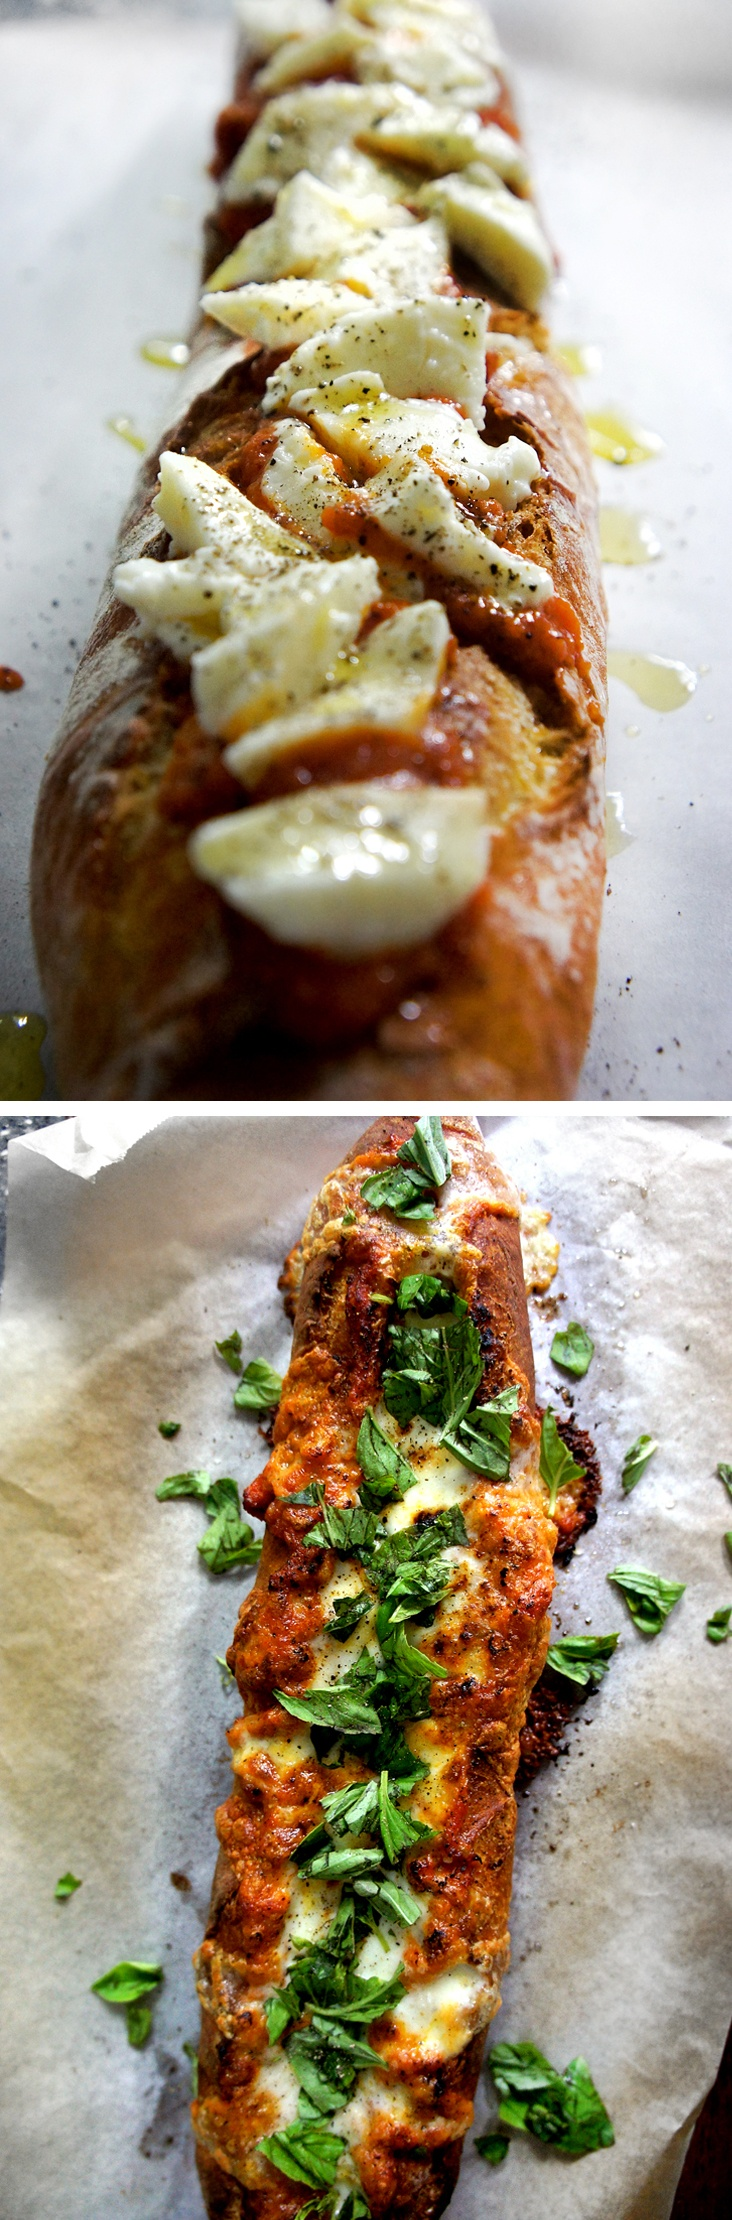 Toasted and crispy baguette loaded with cheesy melty gooey and yummy ...